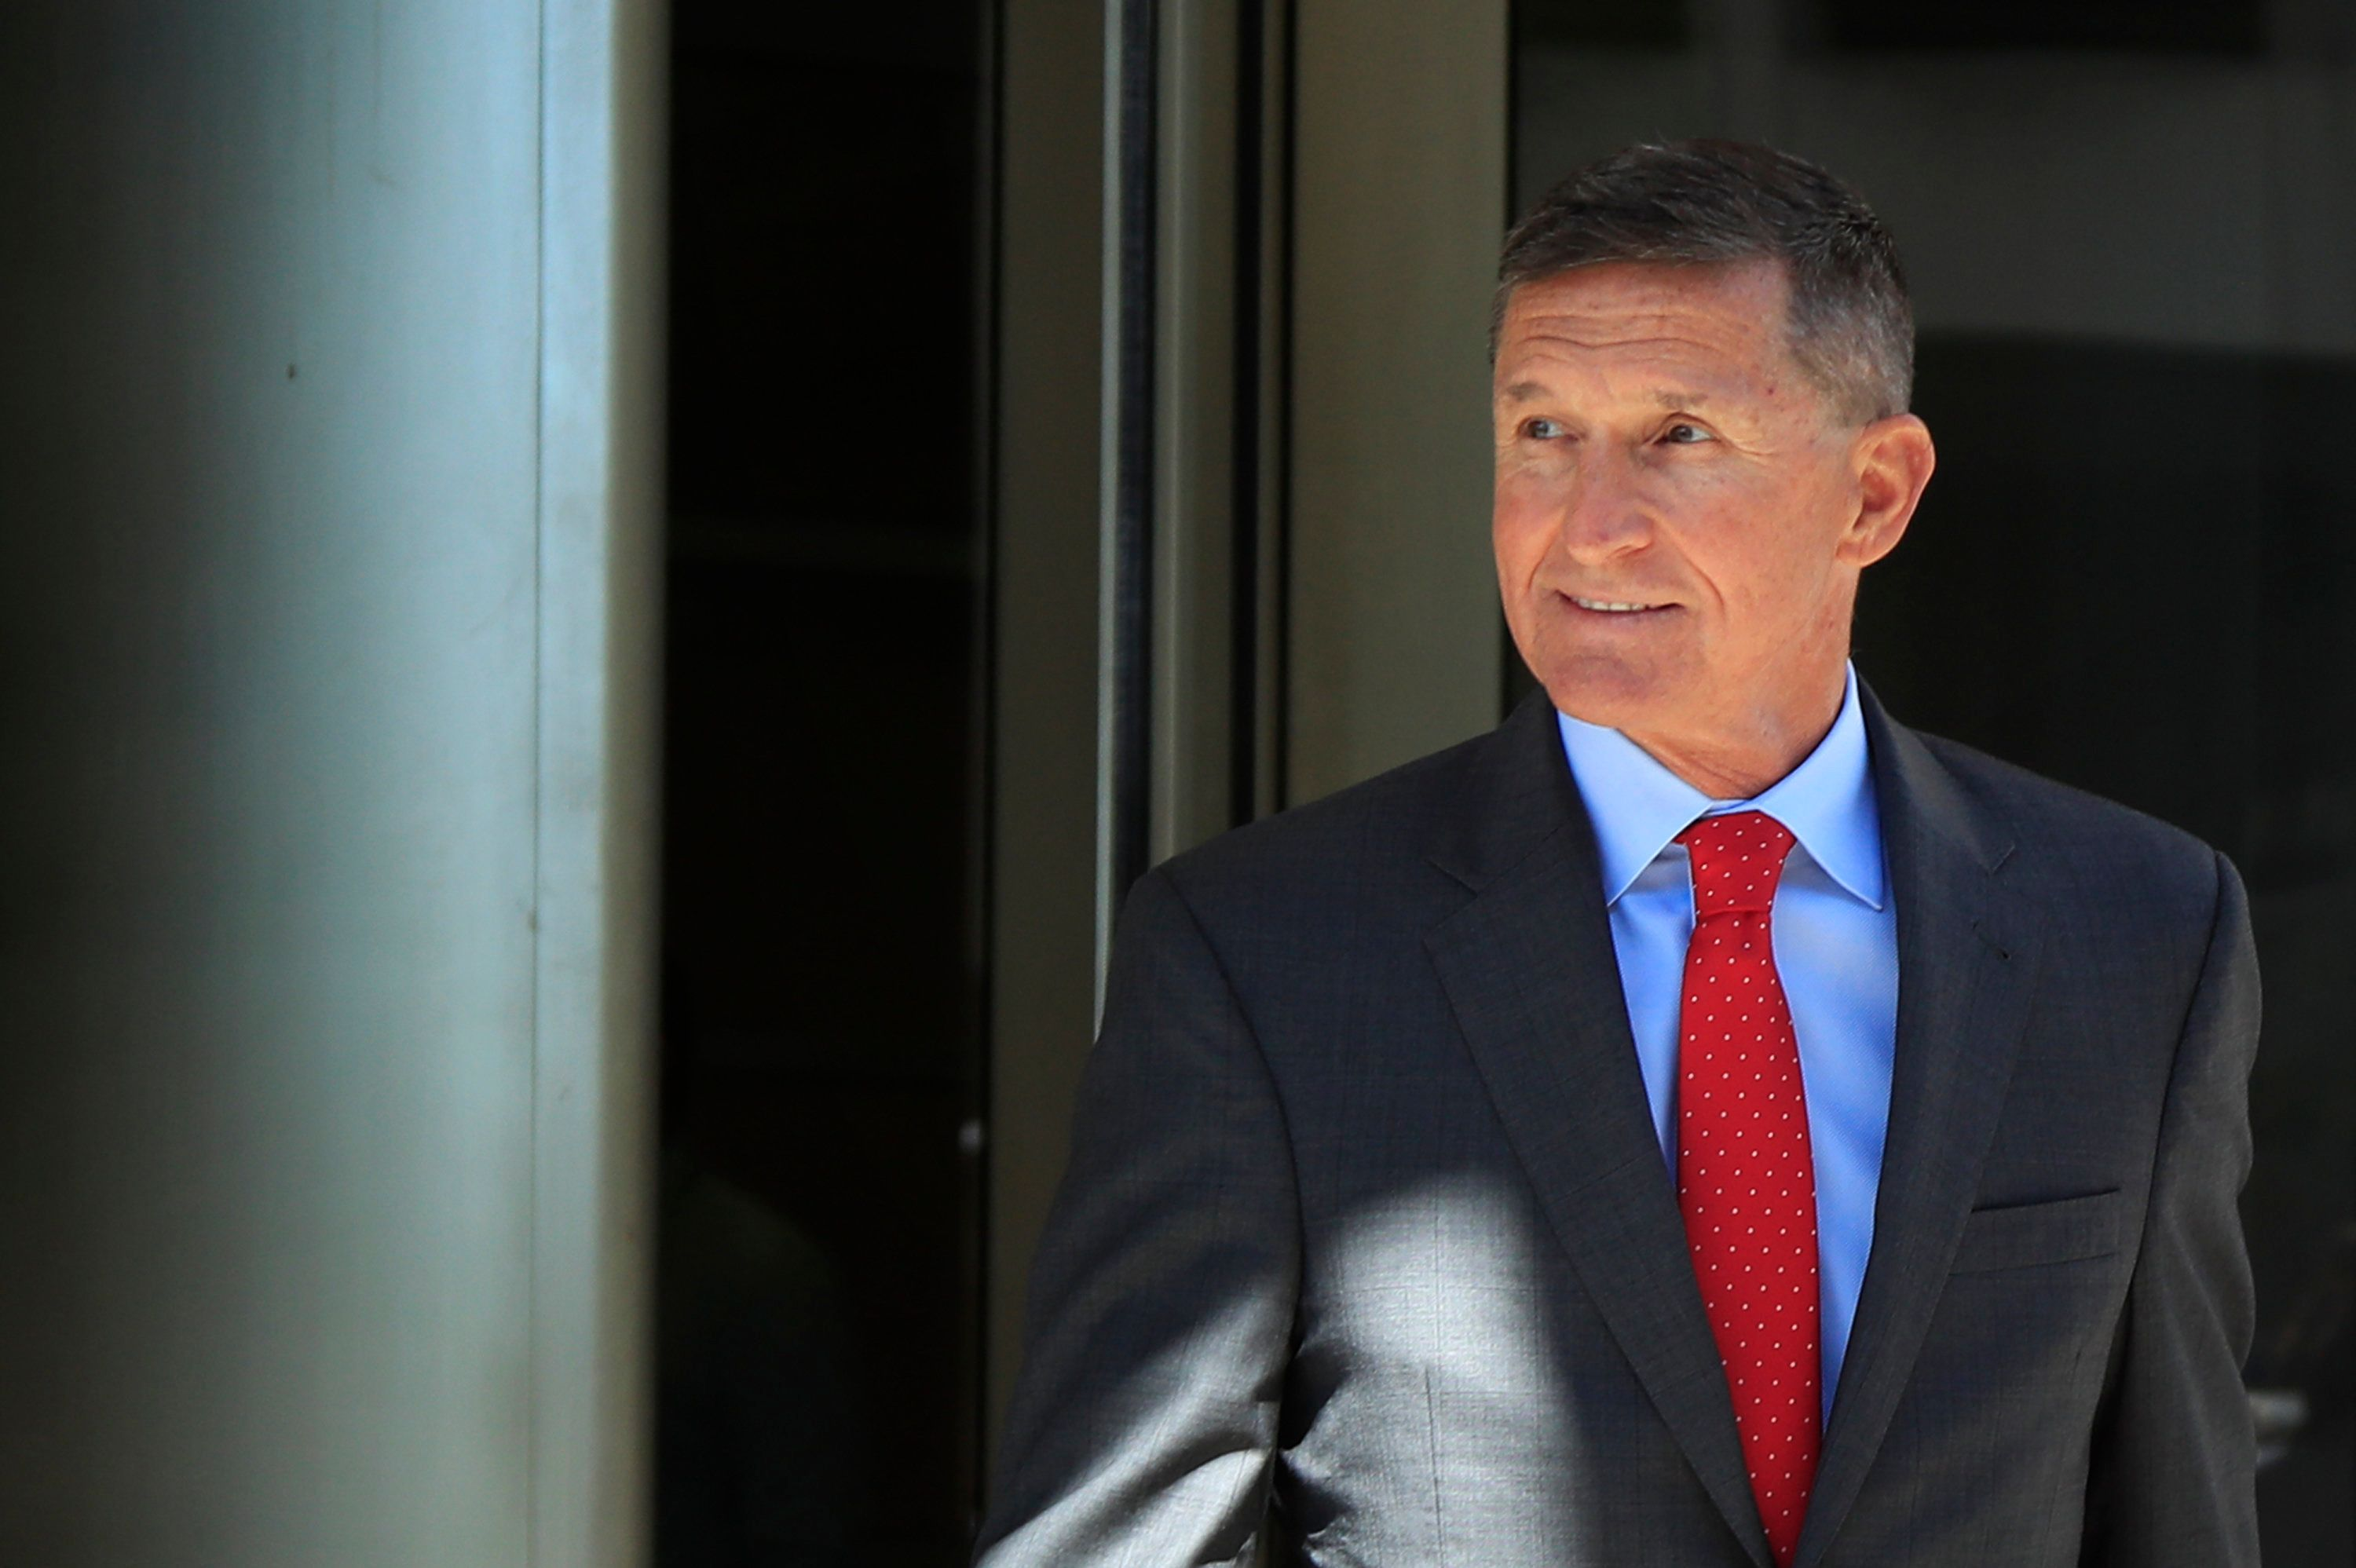 FILE - In this July 10, 2018, file photo, former Trump national security adviser Michael Flynn leaves the federal courthouse in Washington, following a status hearing. Michael Flynn may have given extraordinary cooperation to prosecutors, but the run-up to his sentencing hearing has exposed tensions over an FBI interview in which the former national security adviser lied about his Russian contacts. (AP Photo/Manuel Balce Ceneta, File)